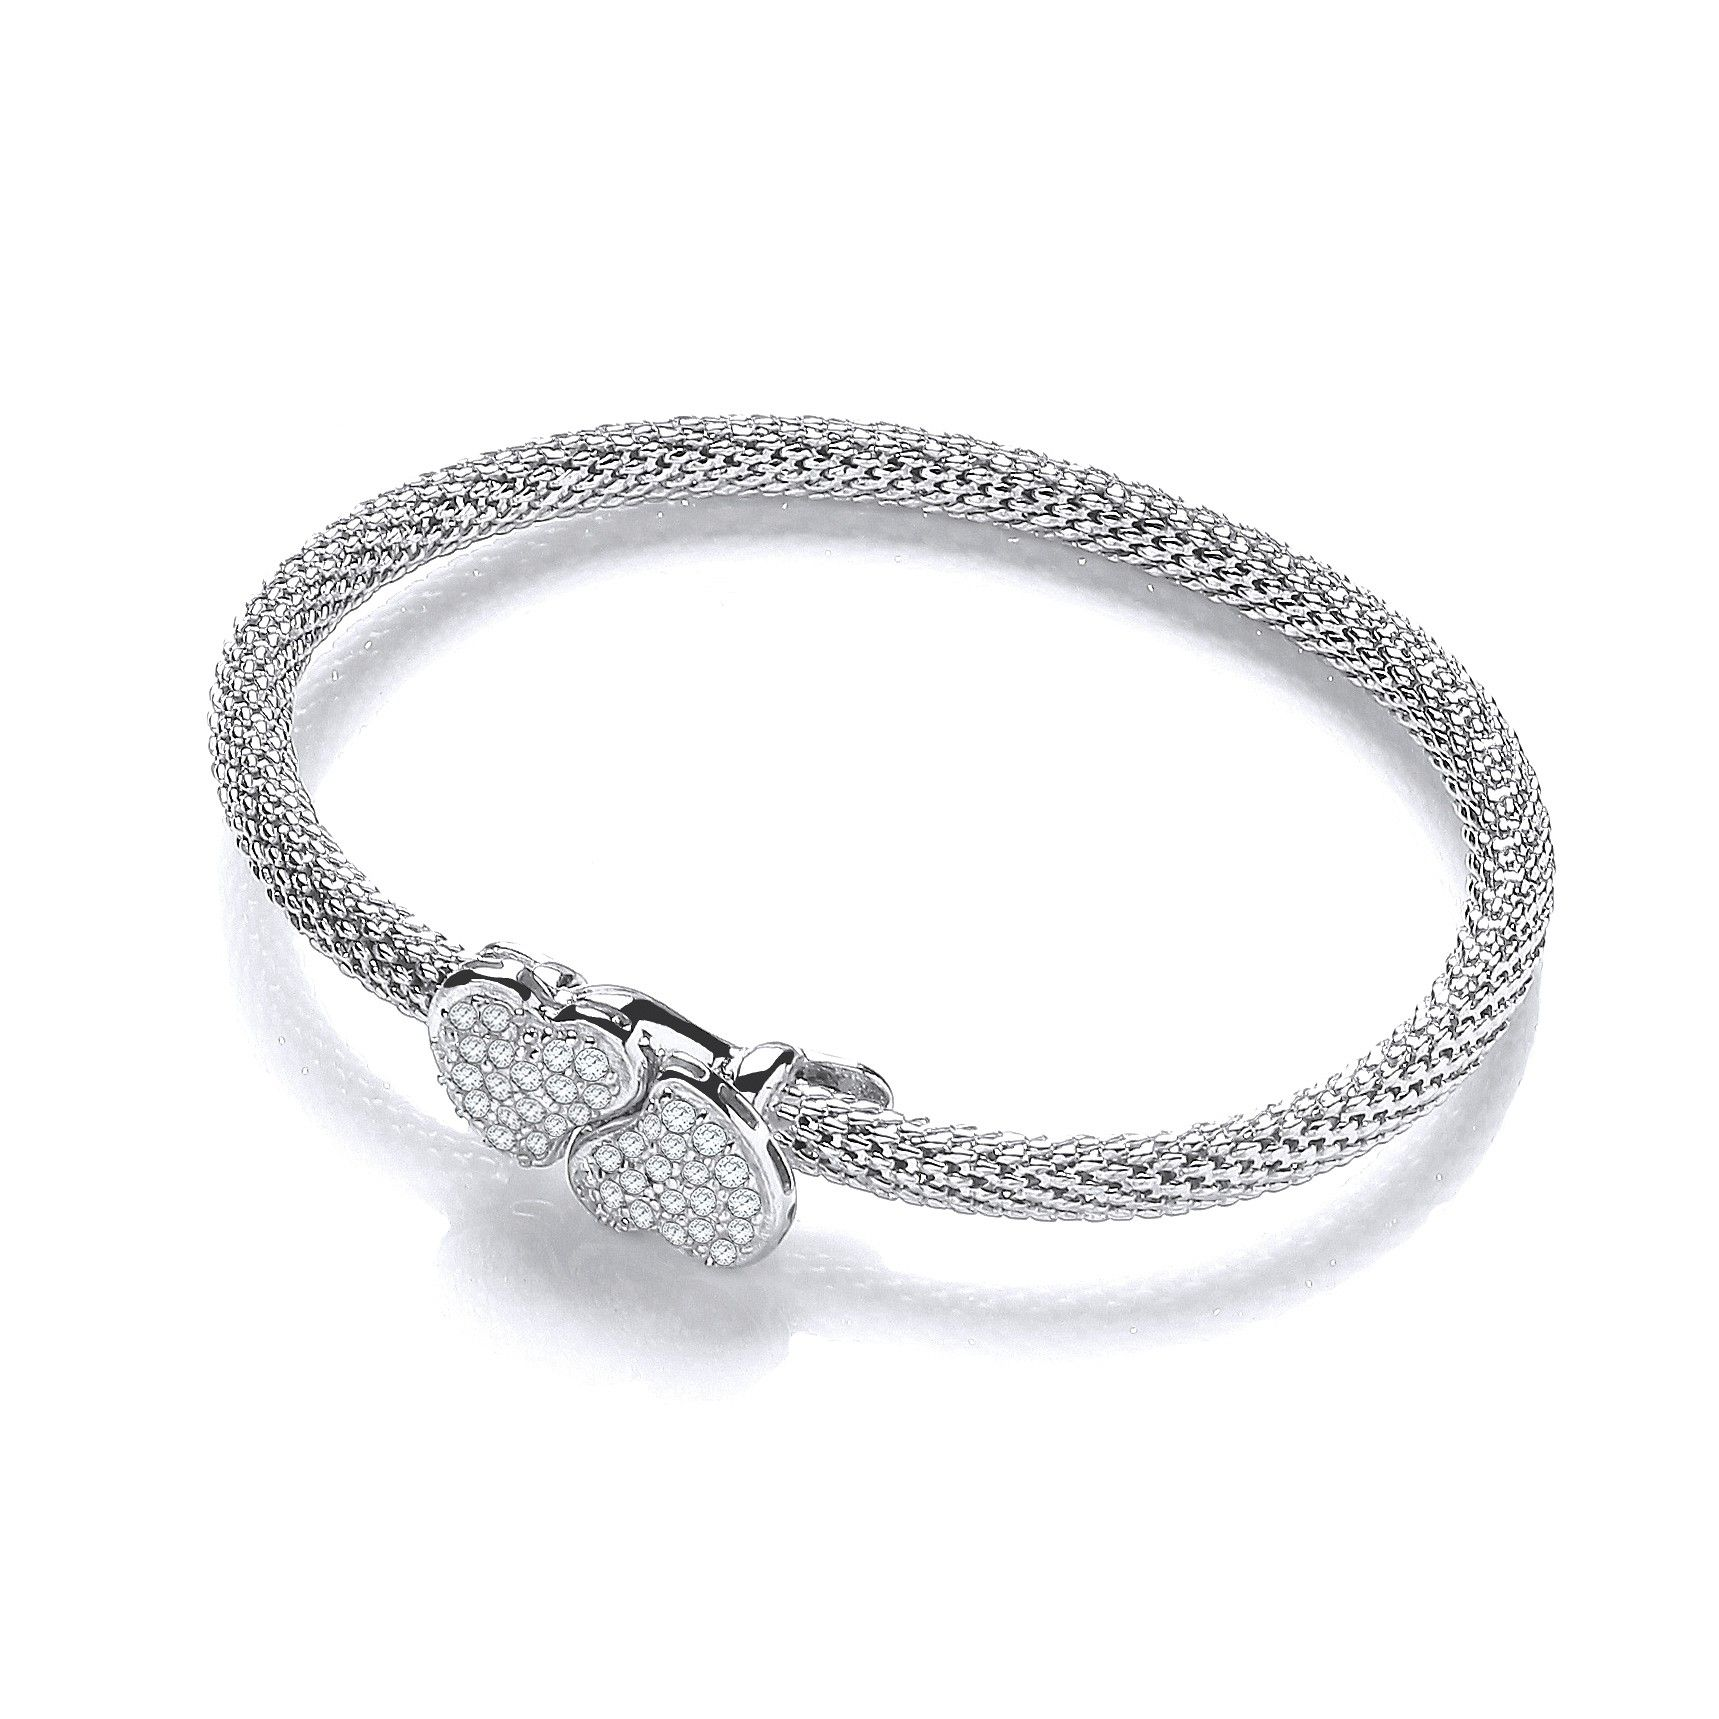 Sterling Silver Heart Bangle Set With White Cubic Zirconia